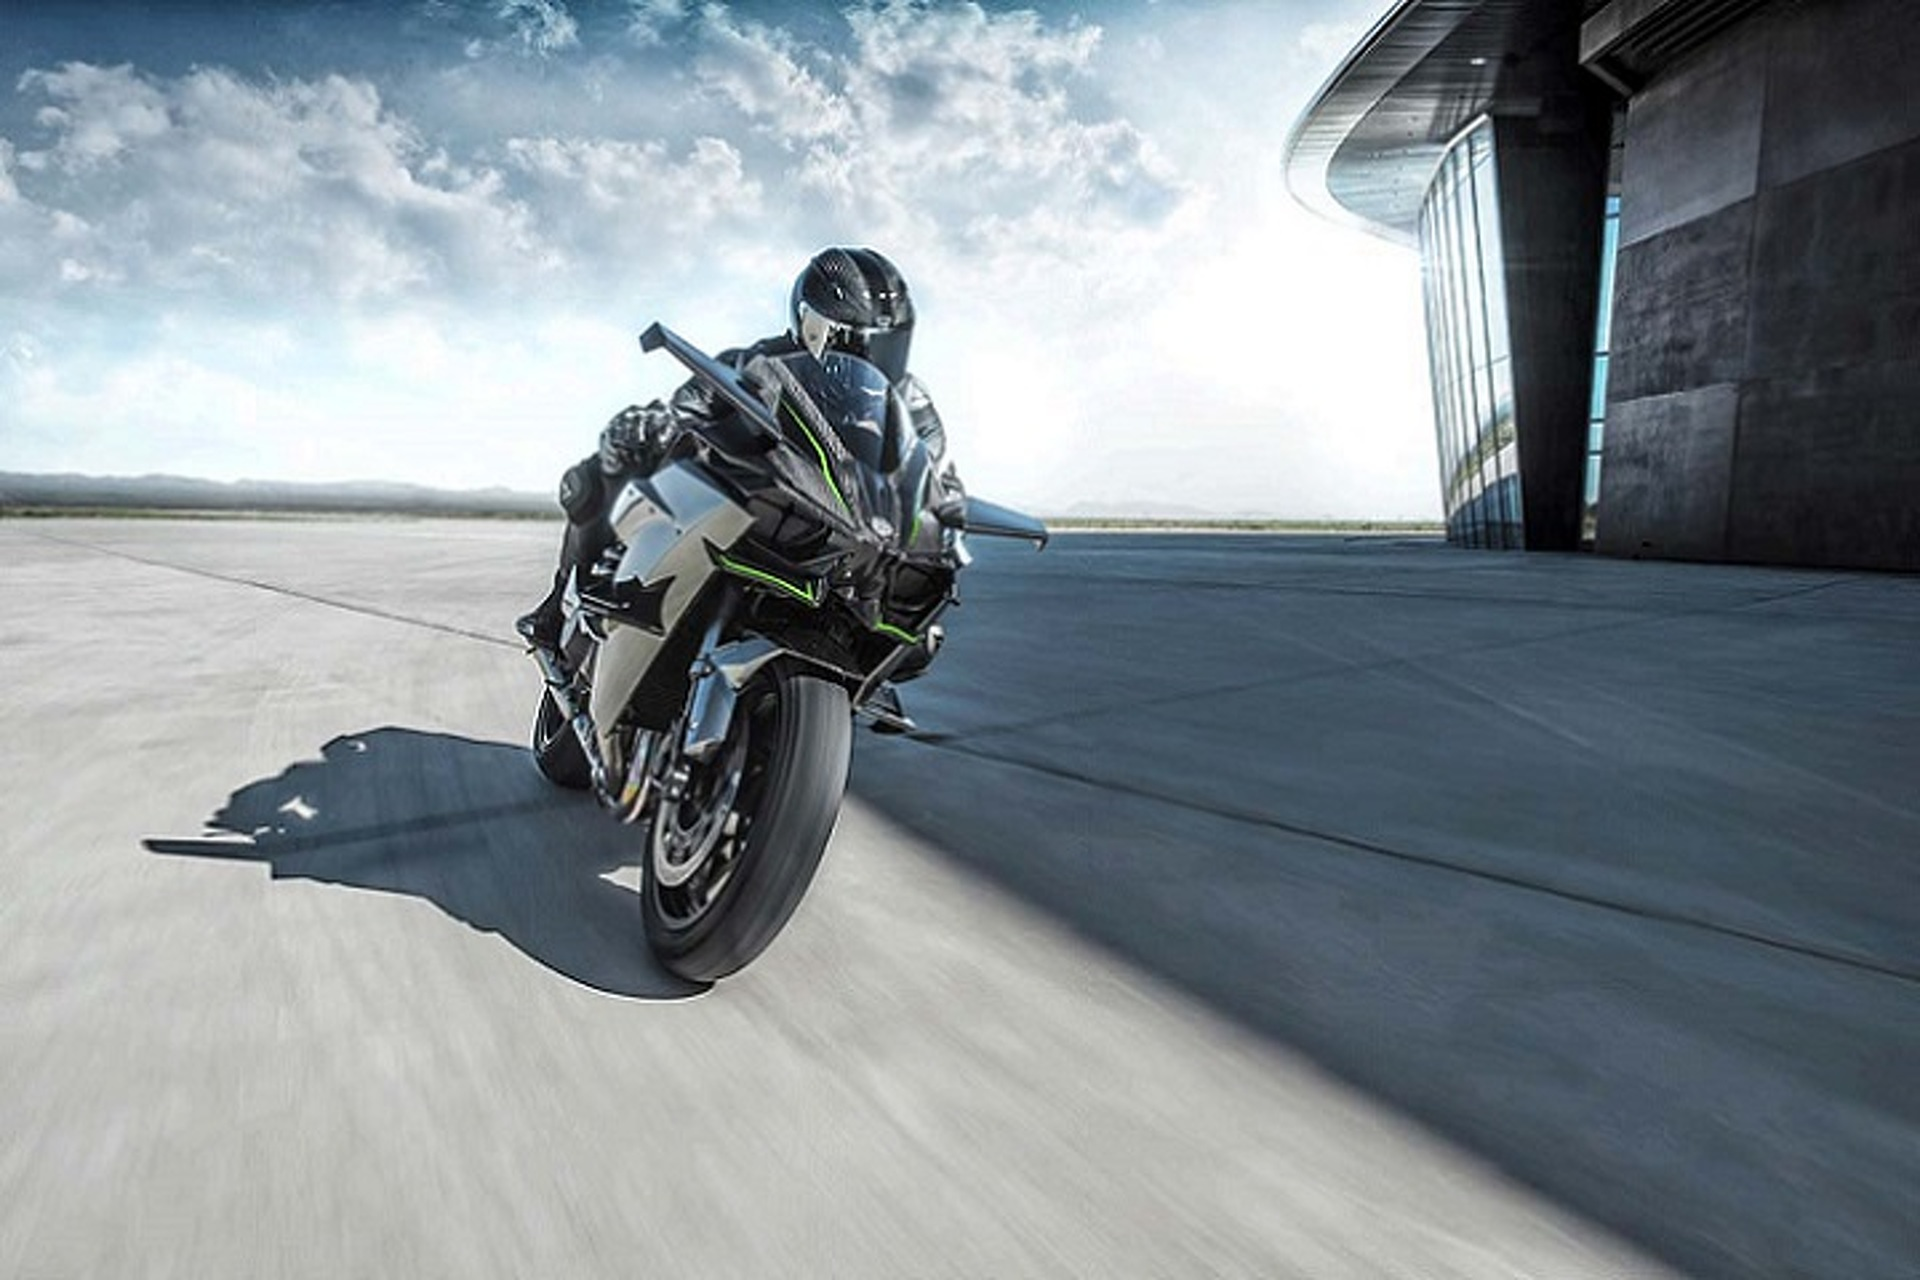 5 of the Fastest Motorcycles on the Planet